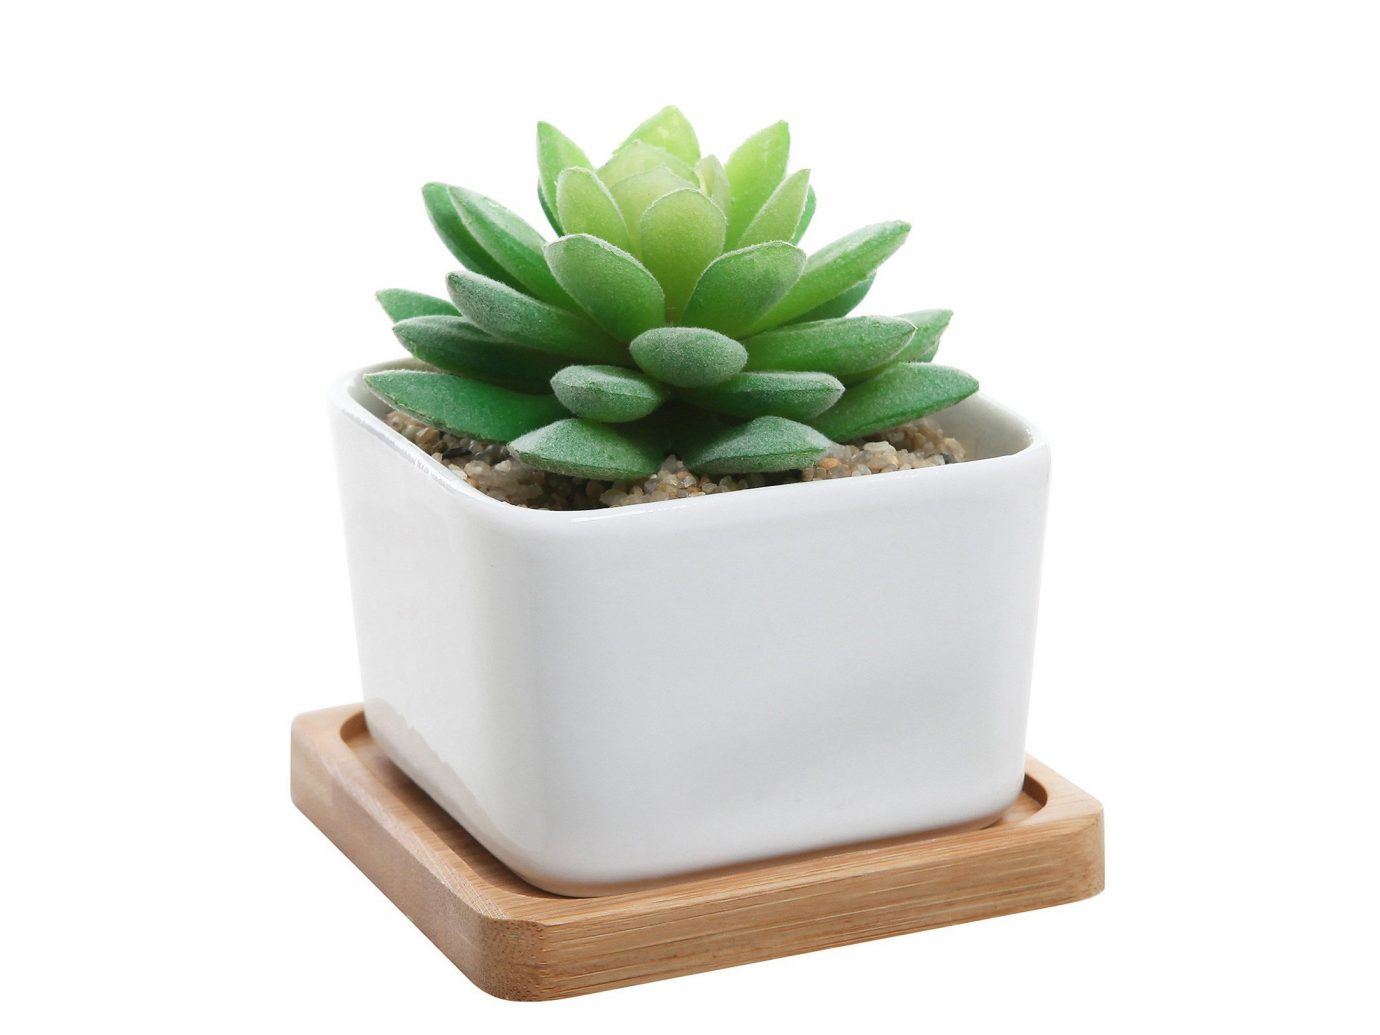 Style + Design plant land plant green flowering plant flowerpot cactus flower square vegetable